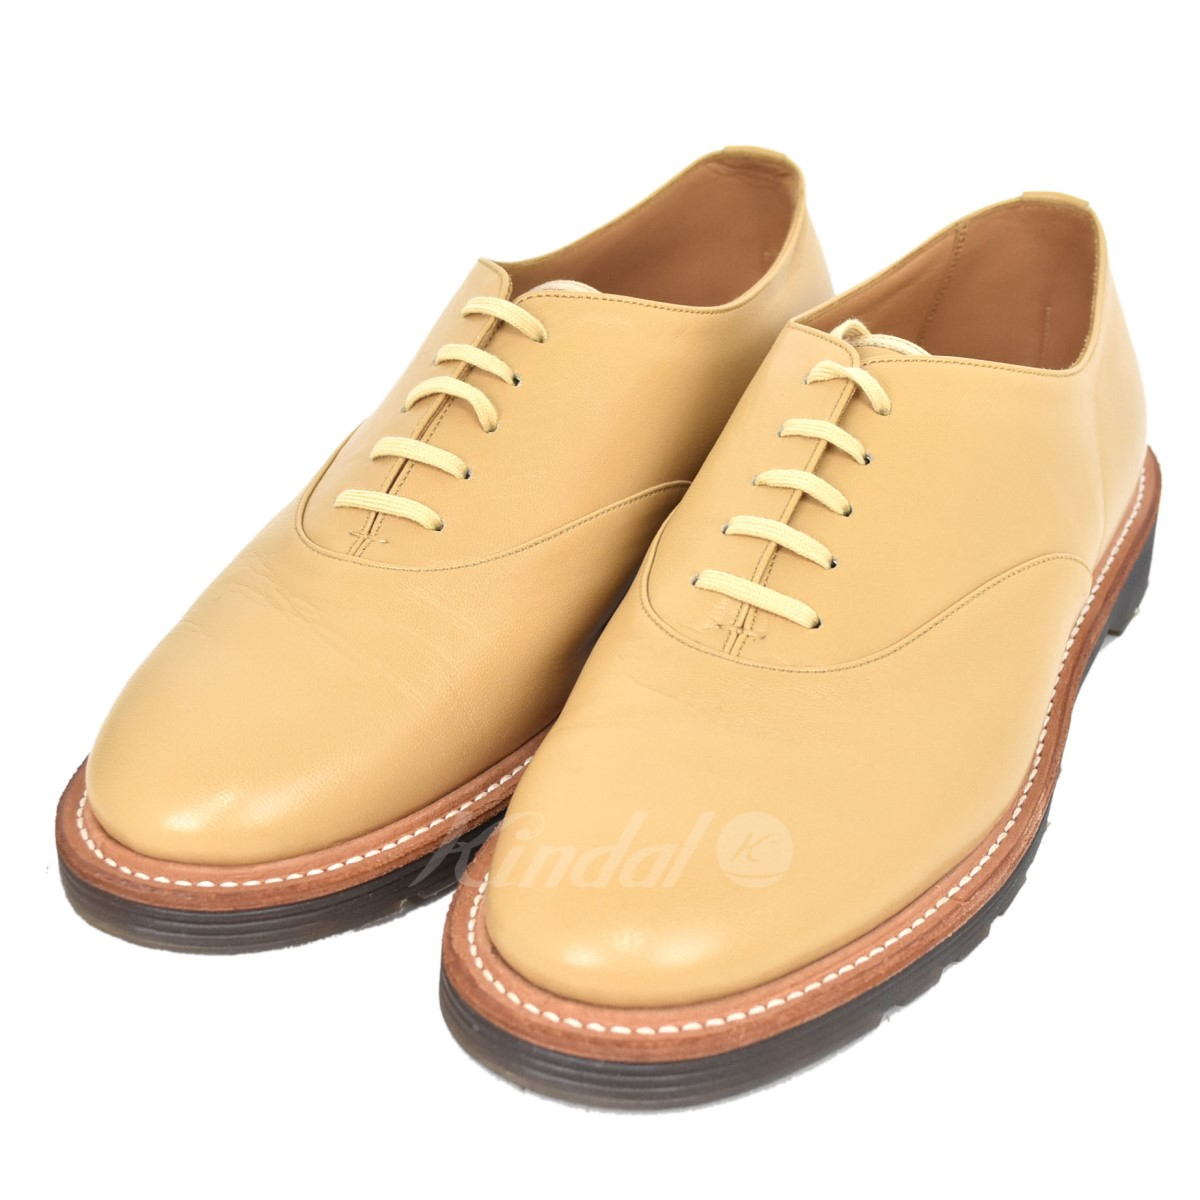 【中古】TAKAHIROMIYASHITA TheSoloIst. FRENCH OXFORD スニーカー 【送料無料】 【141360】 【KIND1551】